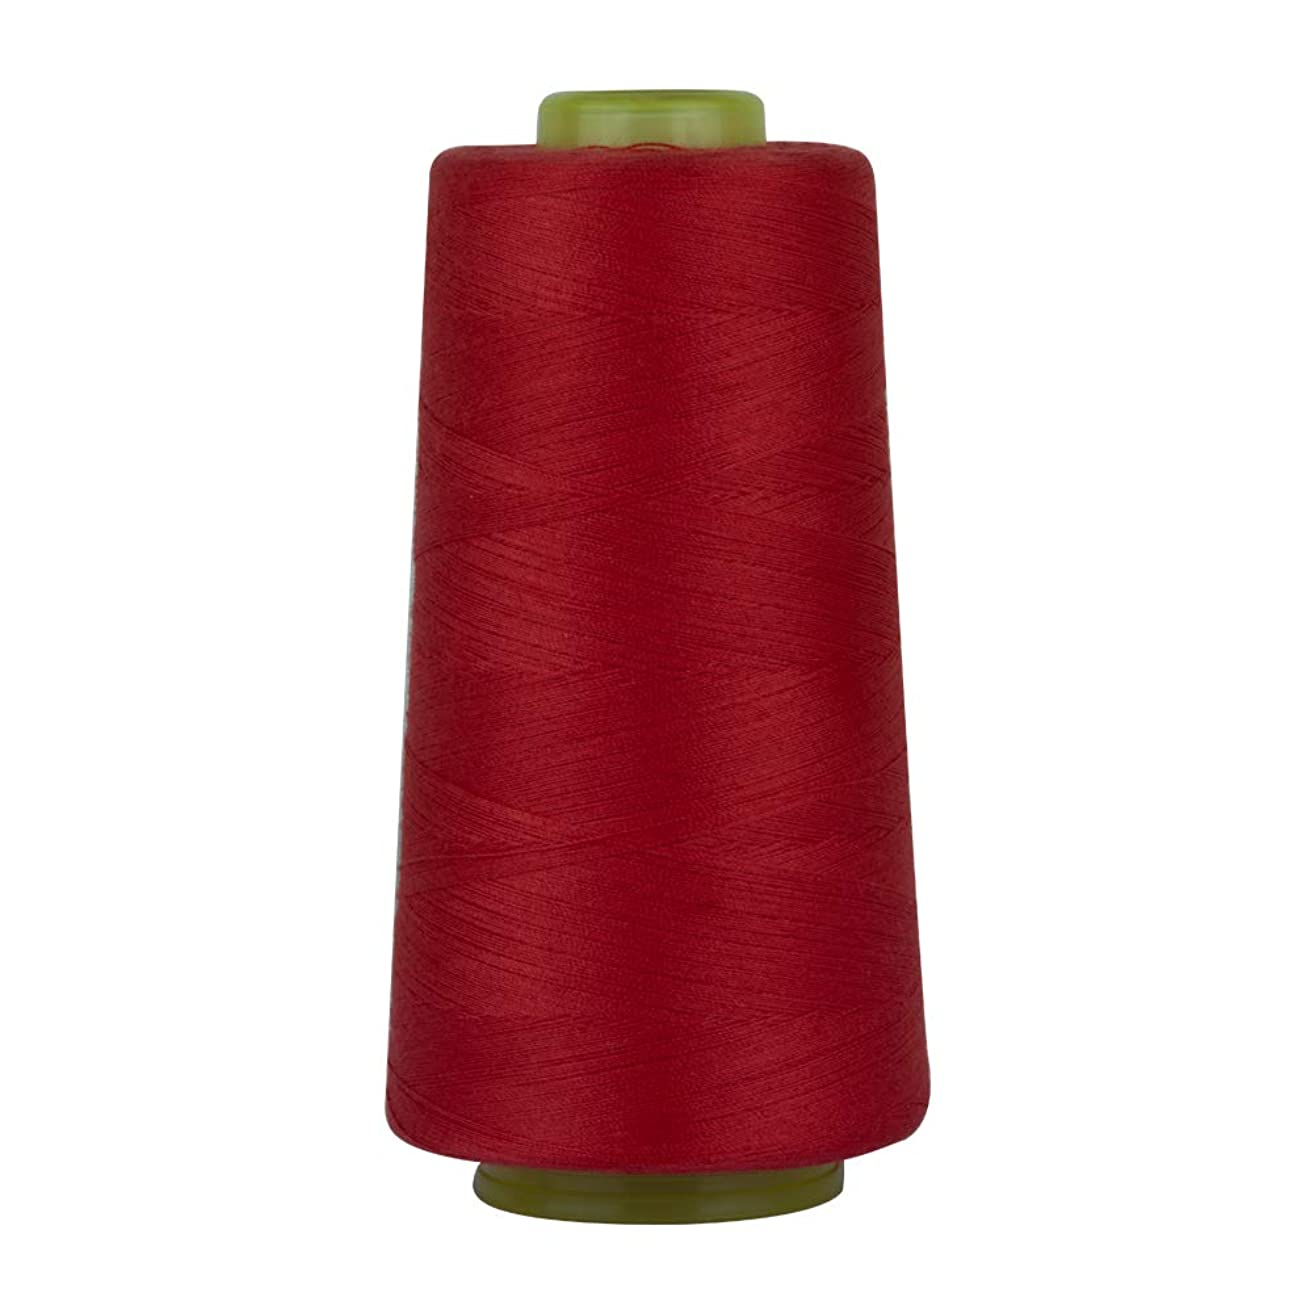 RCL 100% Polyester Sewing Thread Spools - 3000 Yards/1 Spool of Yarn, 40/2 All-Purpose Connecting Threads for Sewing Machine and Hand Repair Works (Red)